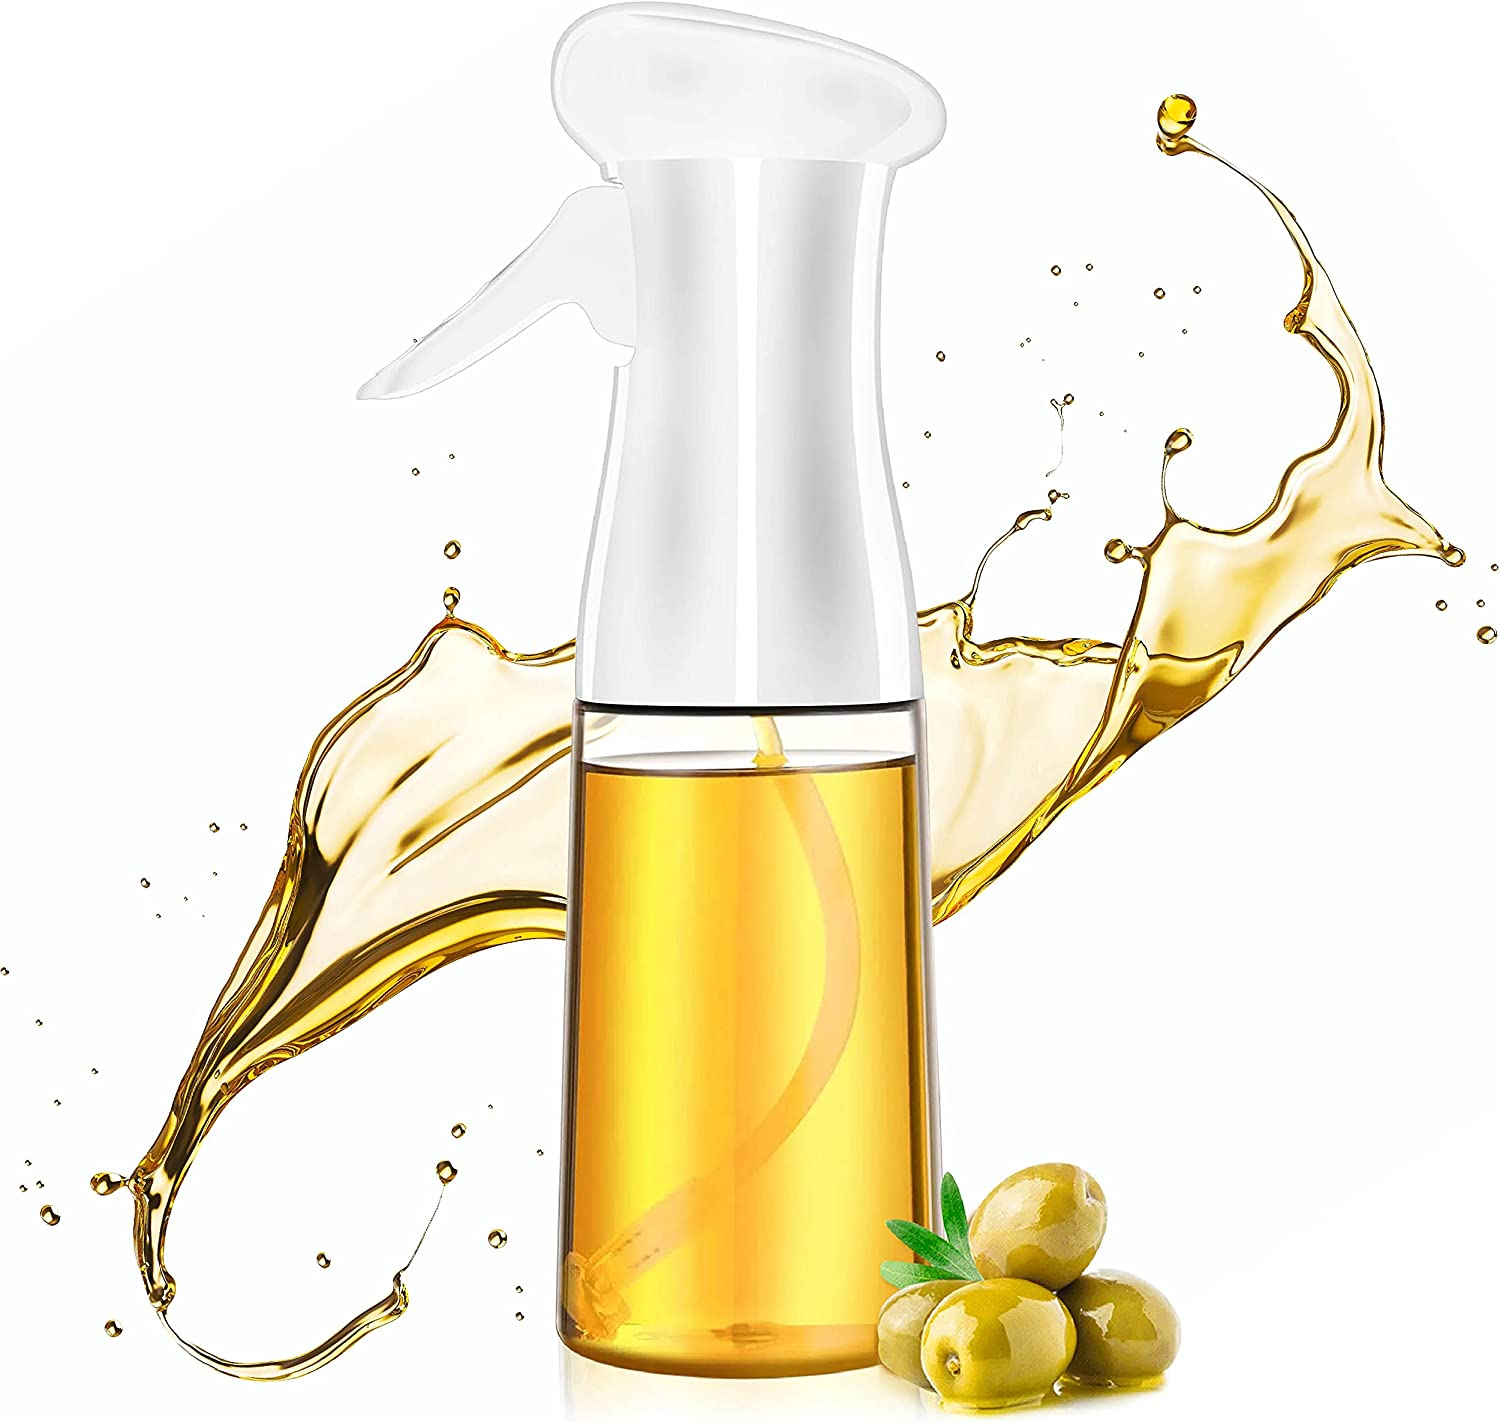 Oil Sprayer for Cooking - Non Clogging Oil cooking spray- 210ml Olive Oil Mister for air fryer- Dishwasher safe spritzer - Kitchen Plastic Spray Bottle - Great for BBQ, frying, and salads